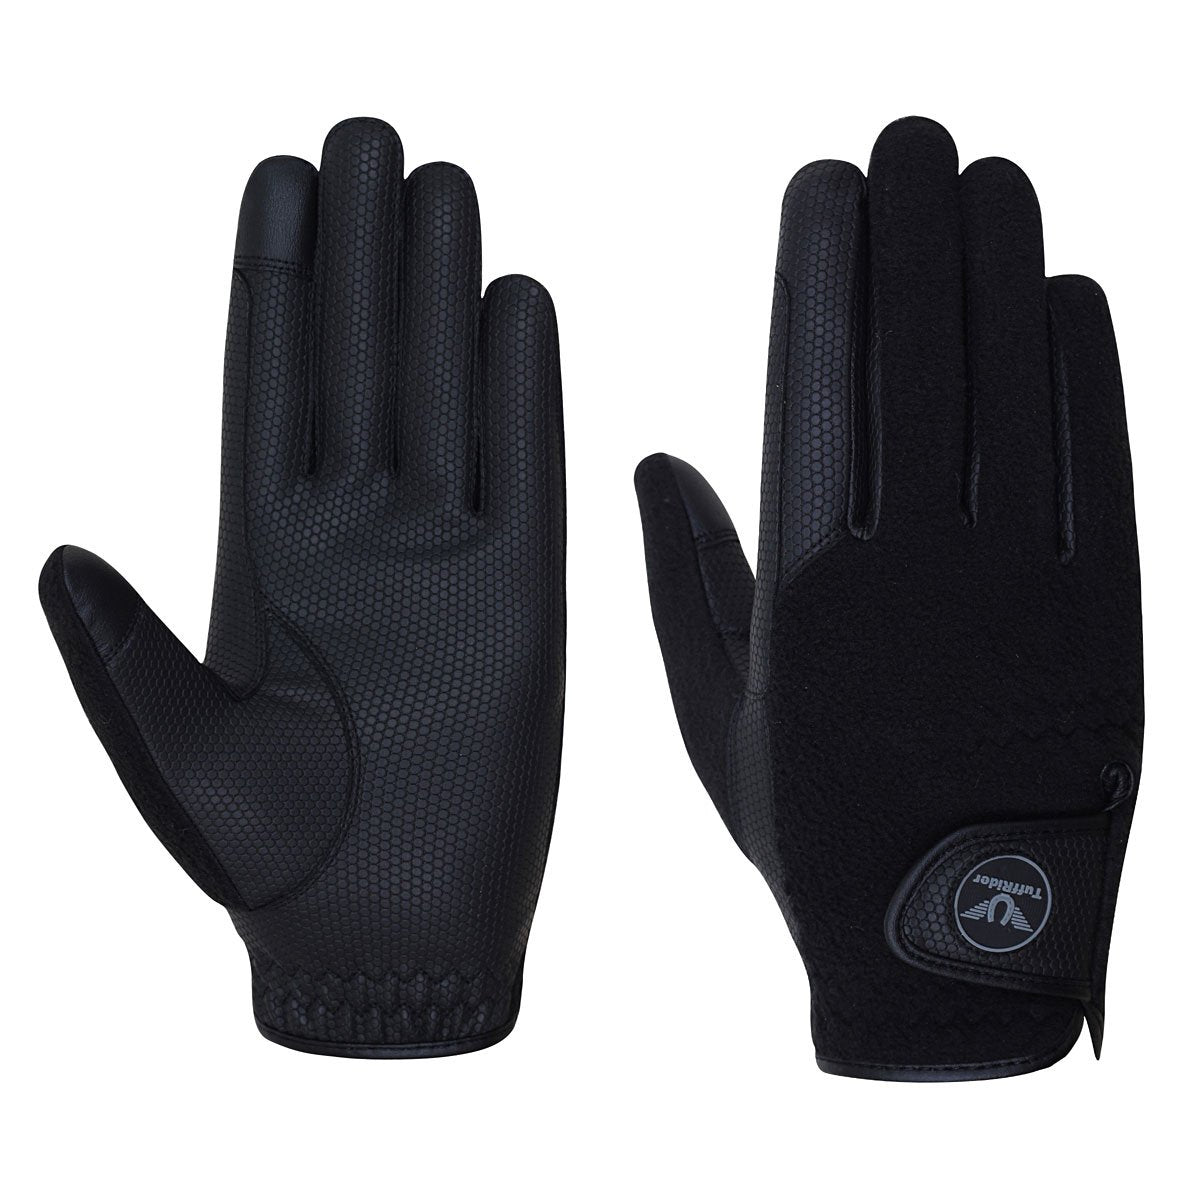 Fleece Back Smart Riding Gloves - TuffRider - Breeches.com